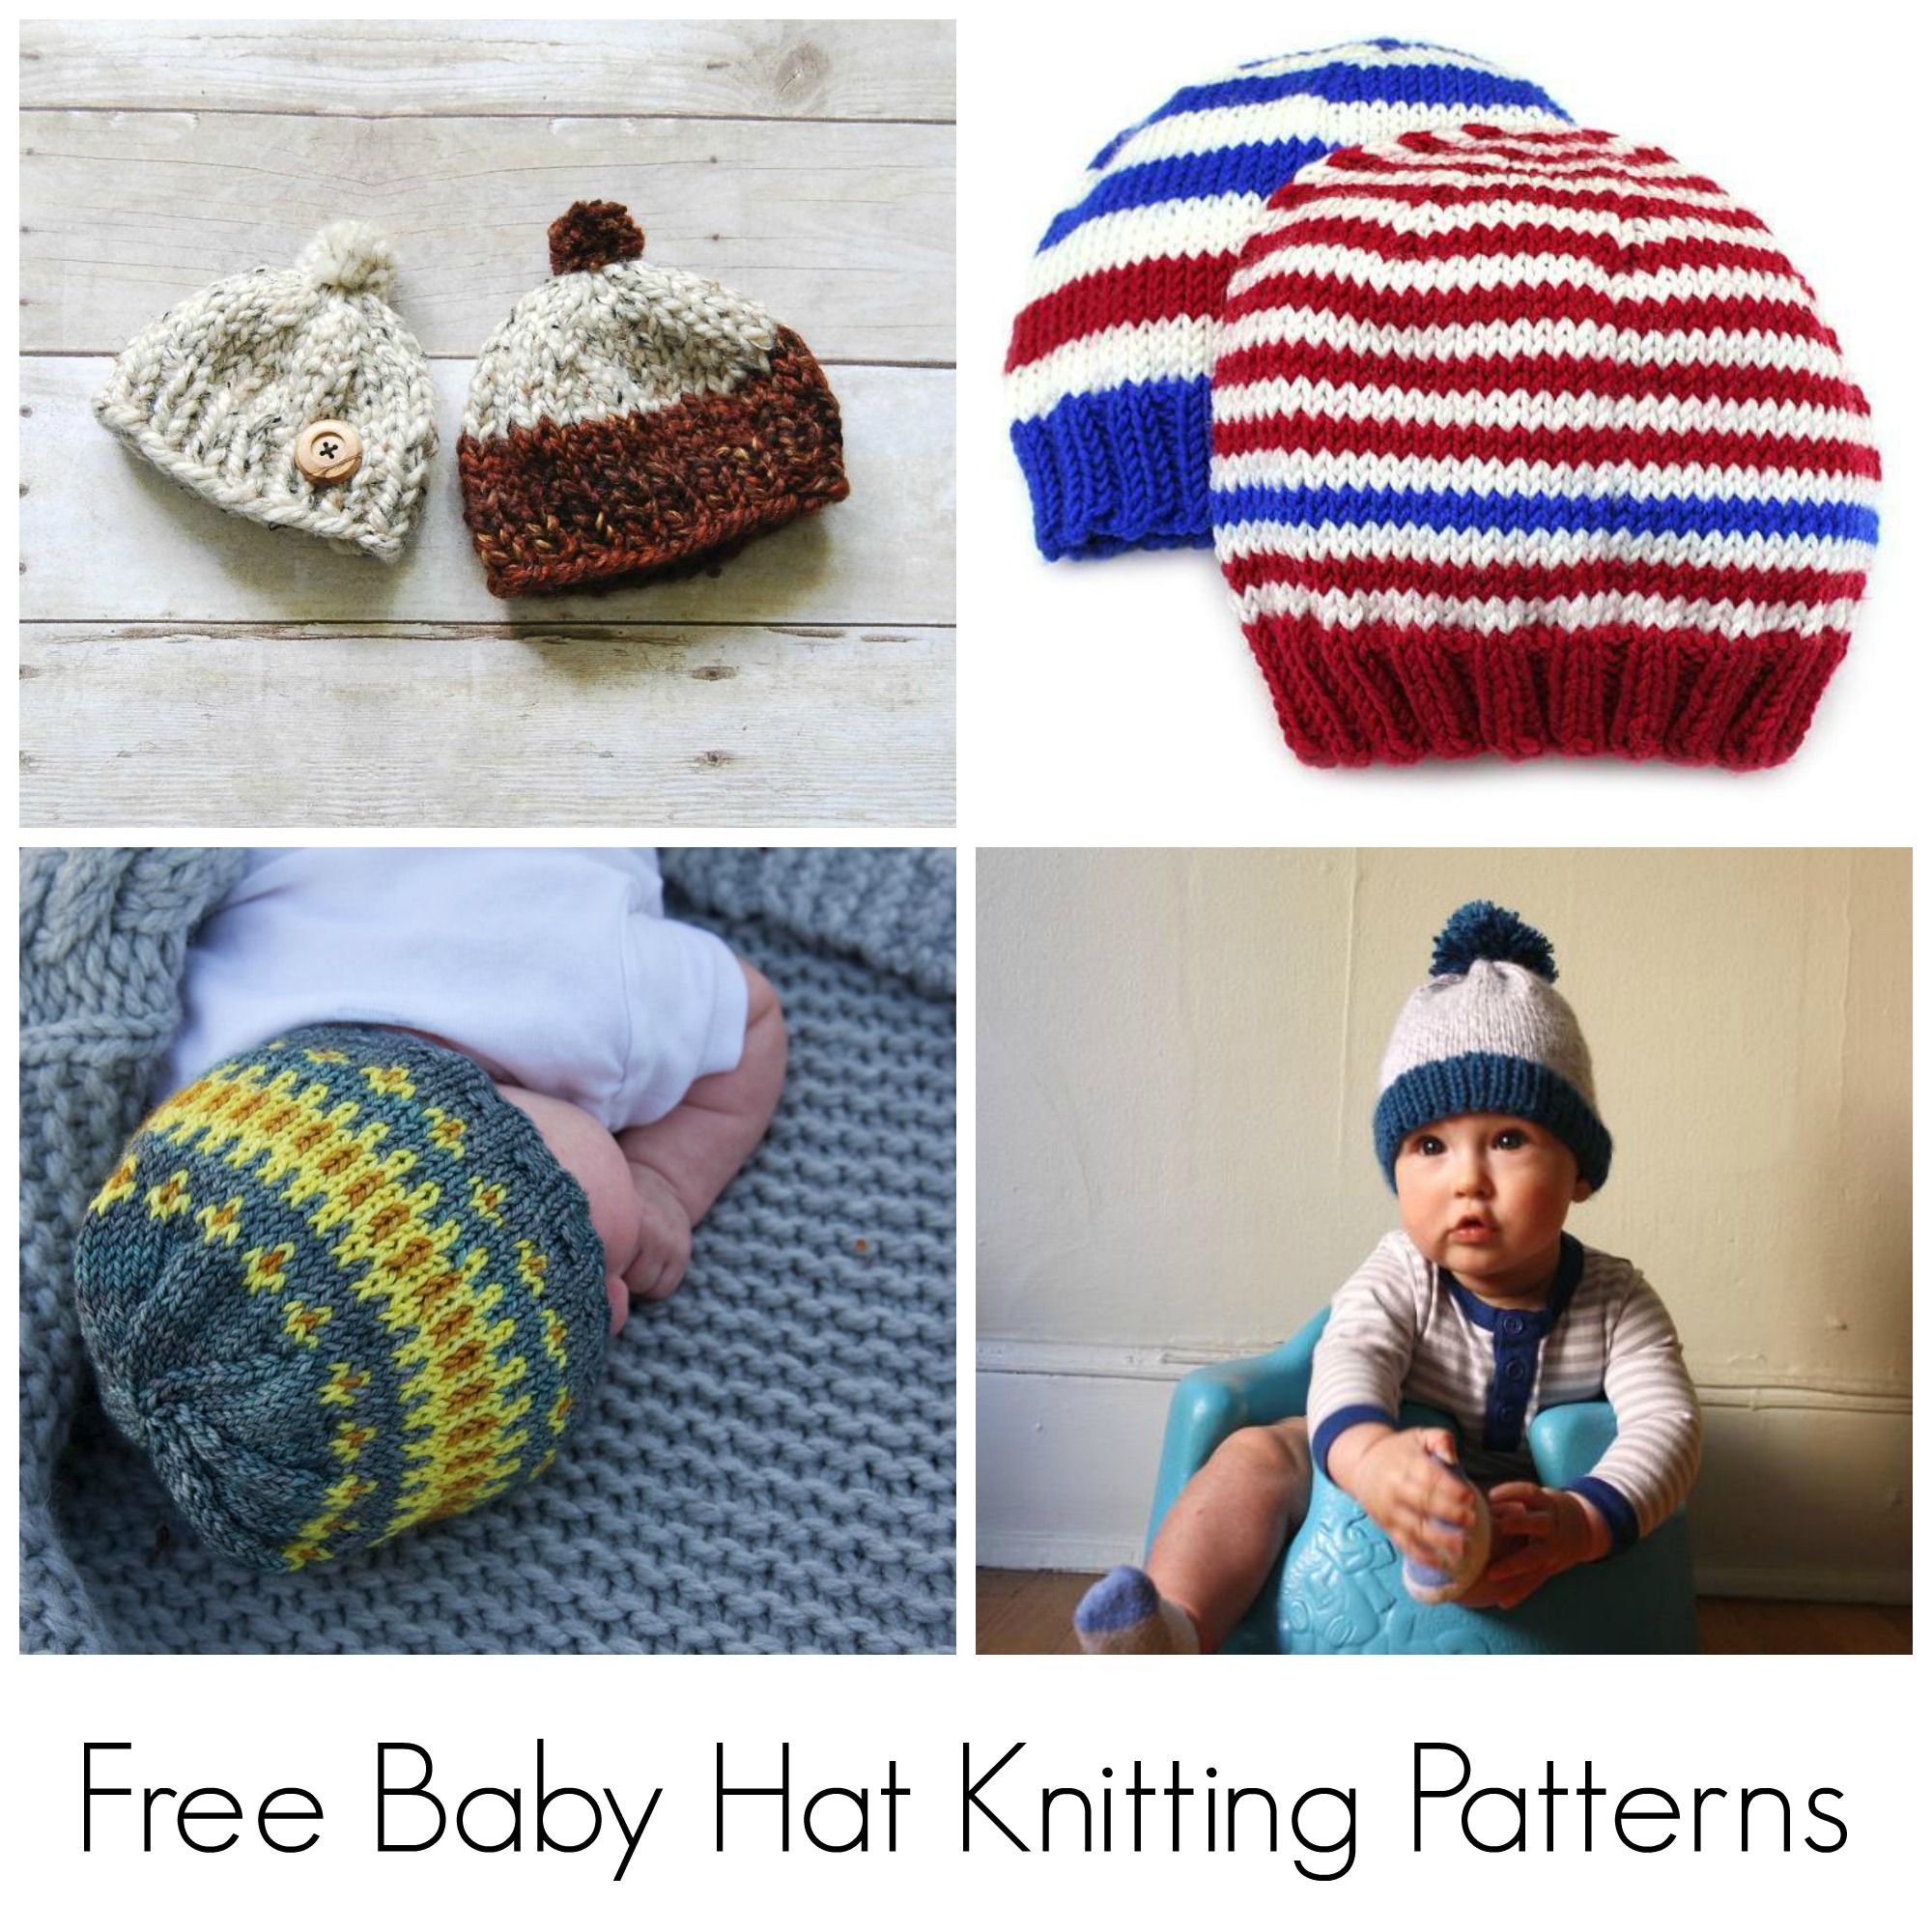 10 free knitting patterns for baby hats baby hat knitting 10 free knitting patterns for baby hats bankloansurffo Gallery